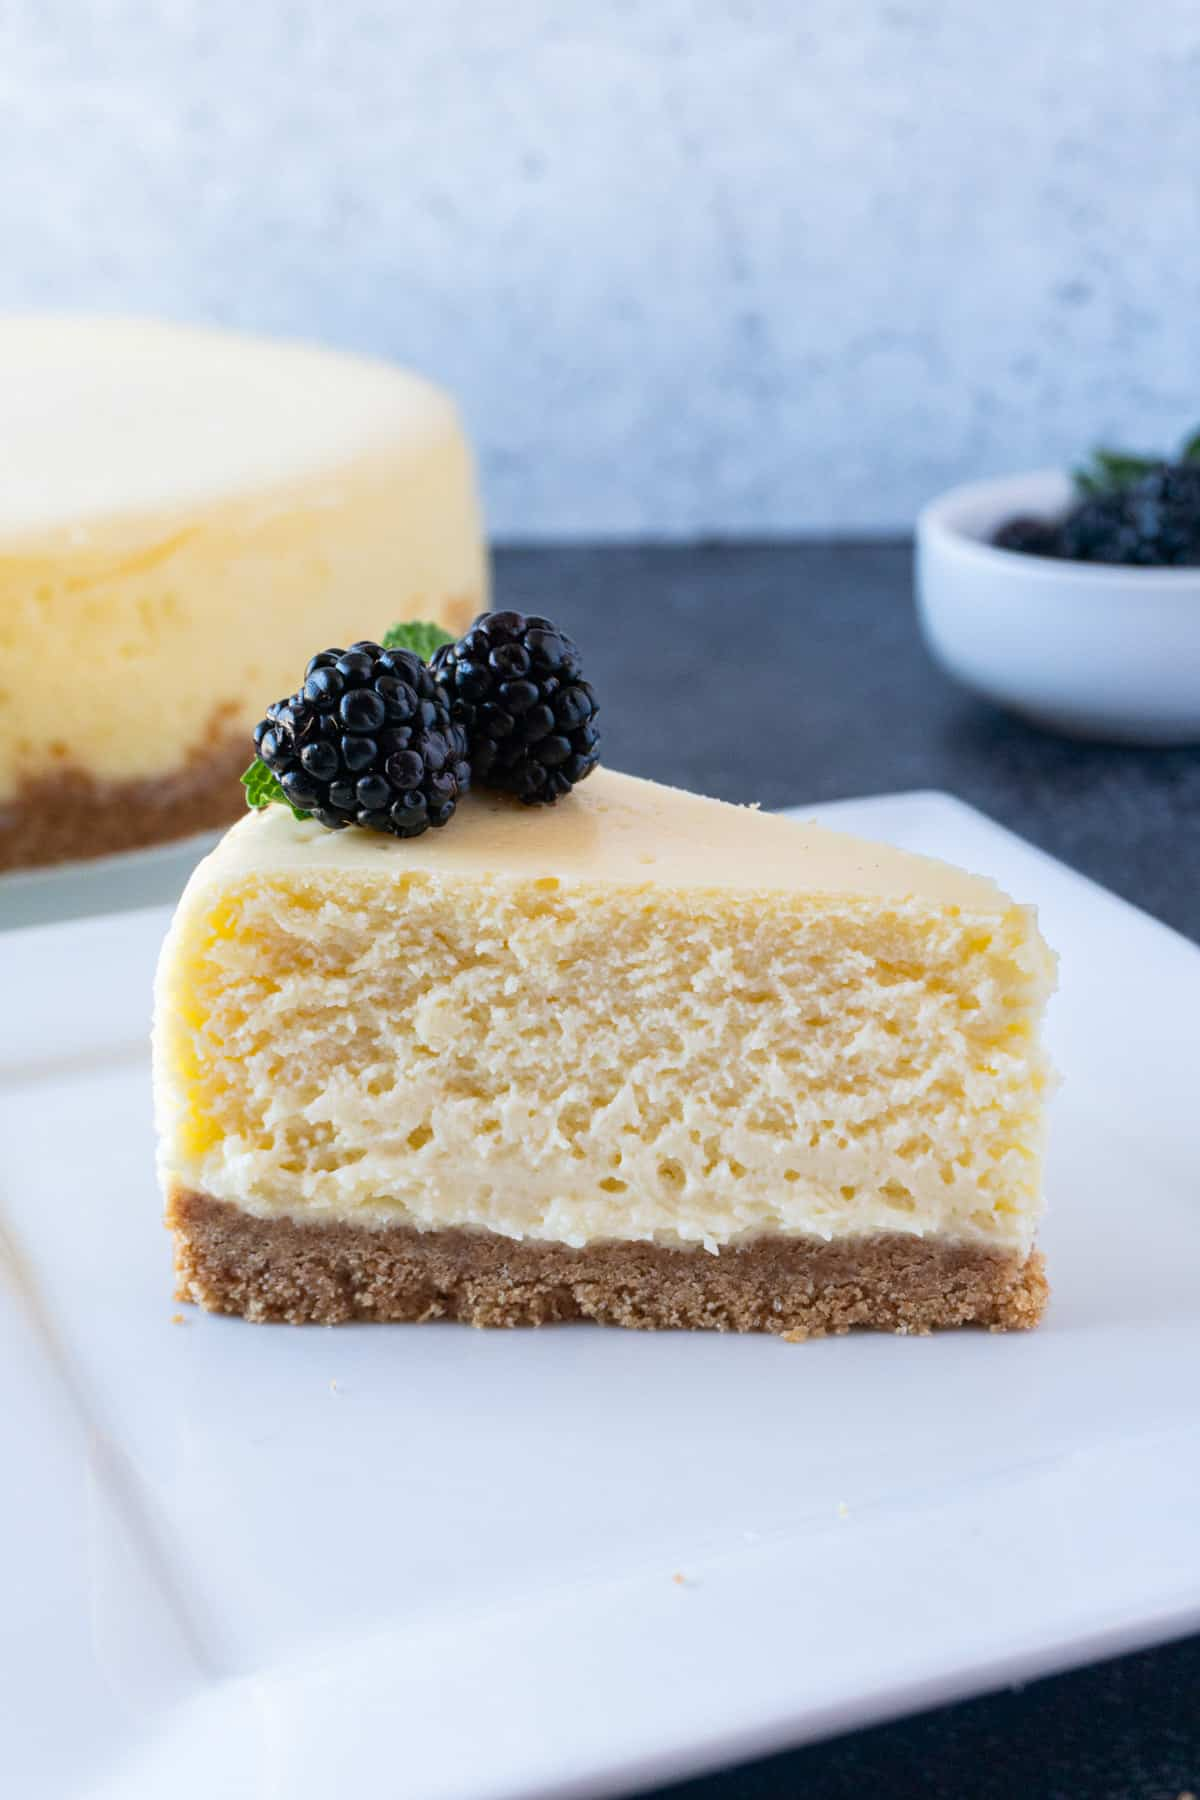 White Chocolate Cheesecake without sauce